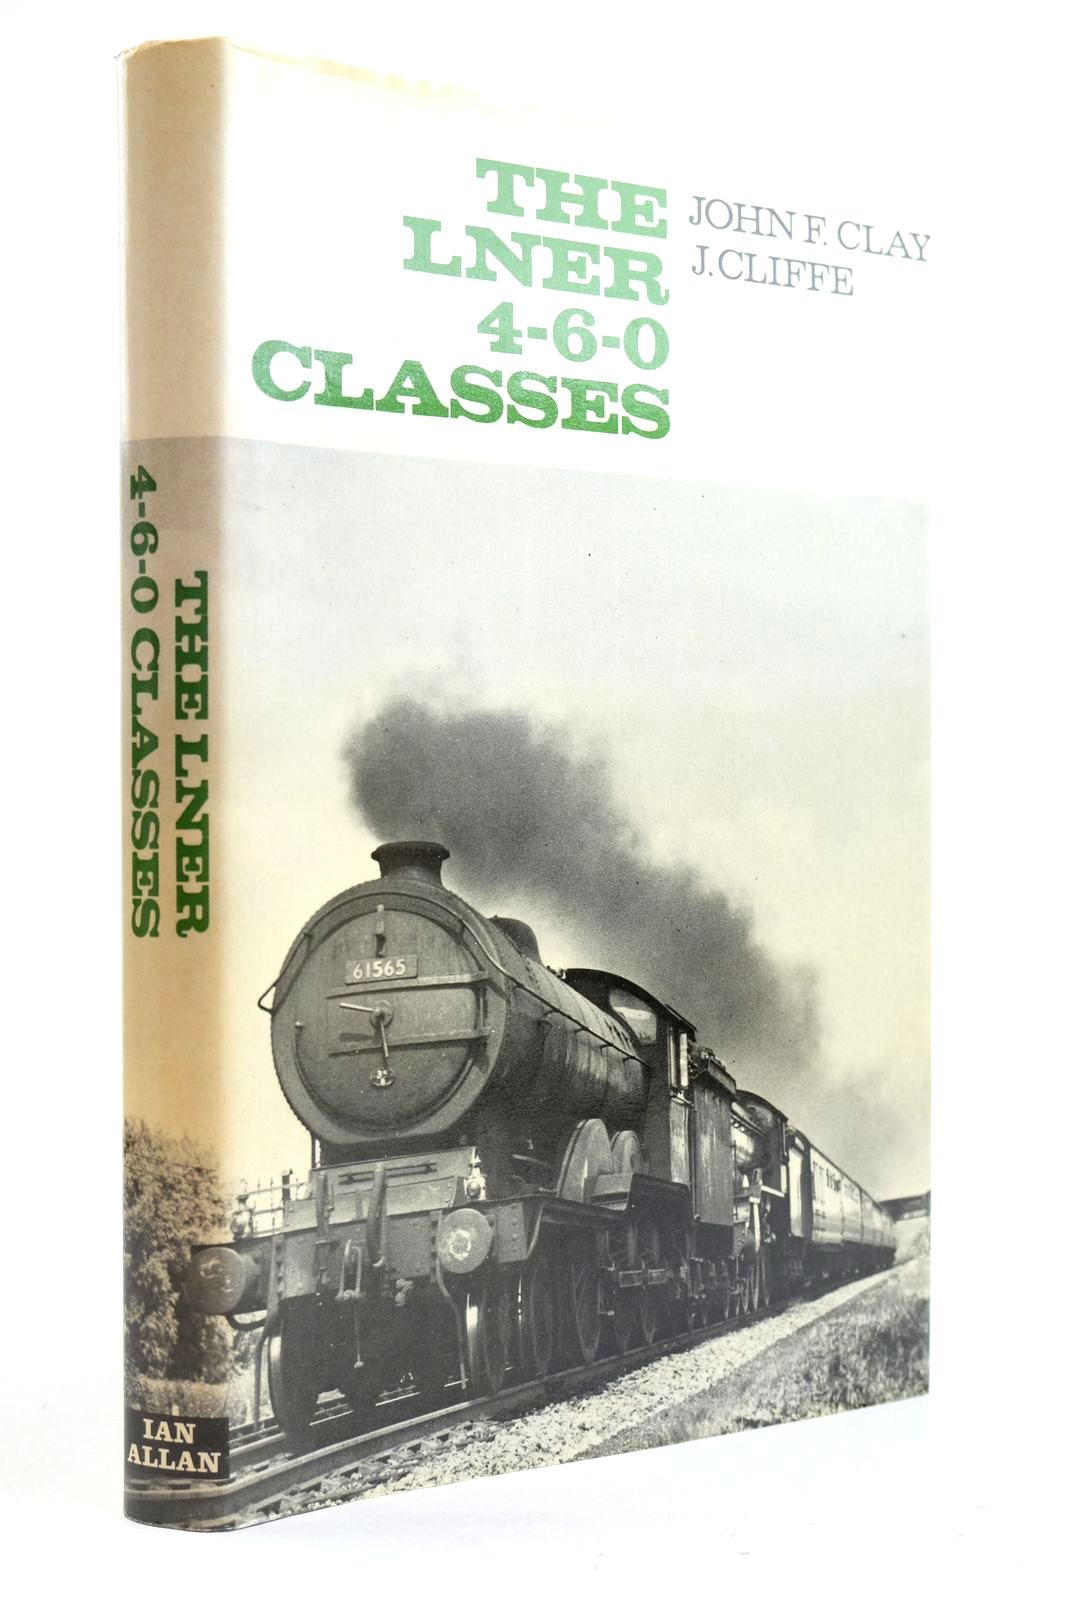 Photo of THE LNER 4-6-0 CLASSES written by Clay, John F. Cliffe, J. published by Ian Allan Ltd. (STOCK CODE: 2133002)  for sale by Stella & Rose's Books